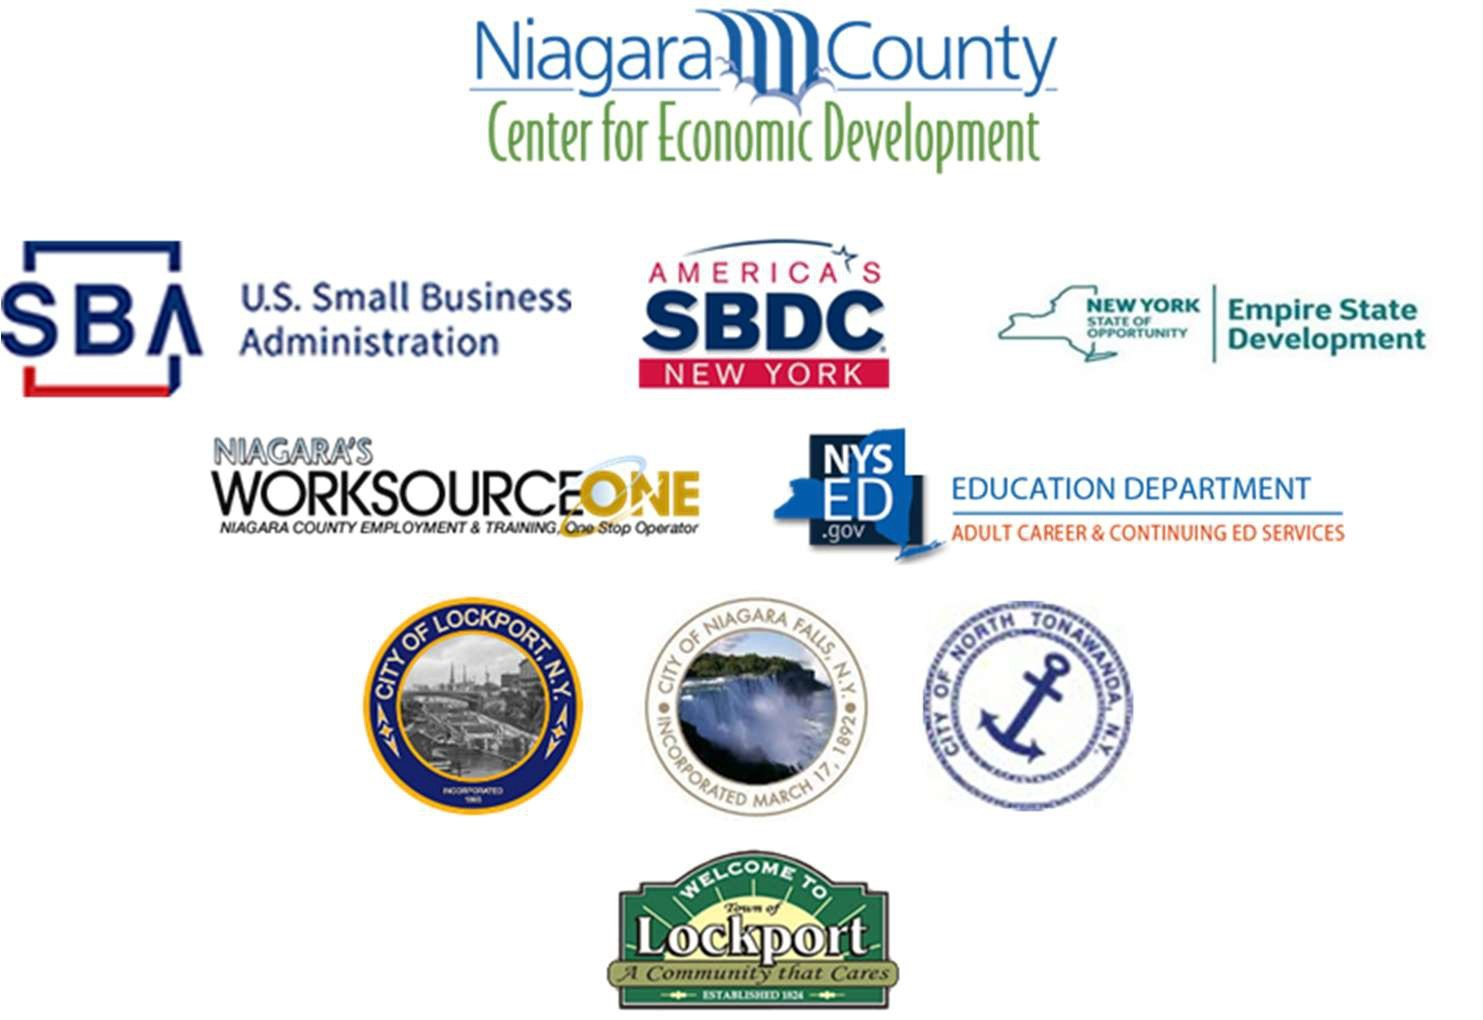 Niagara County Hosting A Virtual Business Workshop For All Interested Businesses